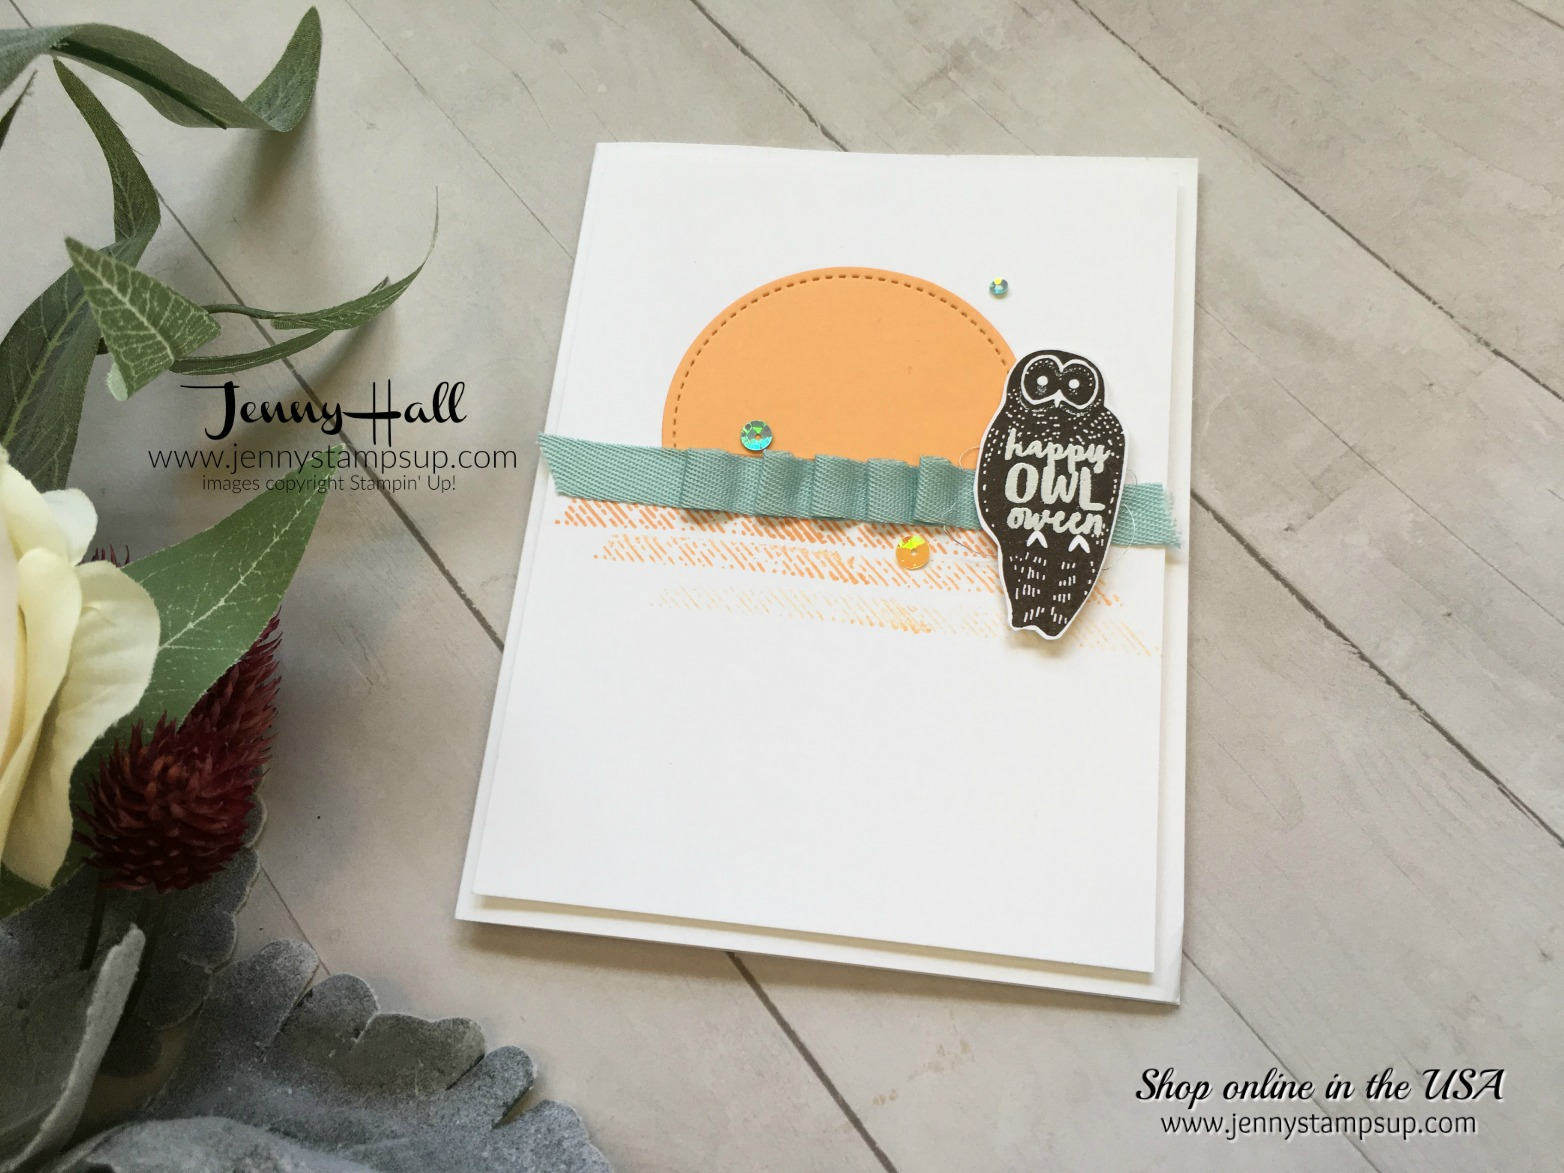 Not so spooky cat card by Jenny Hall at www.jennystampsup.com for cardmaking, free video tutorials, papercrafting, gift packaging, scrapbooking and more!